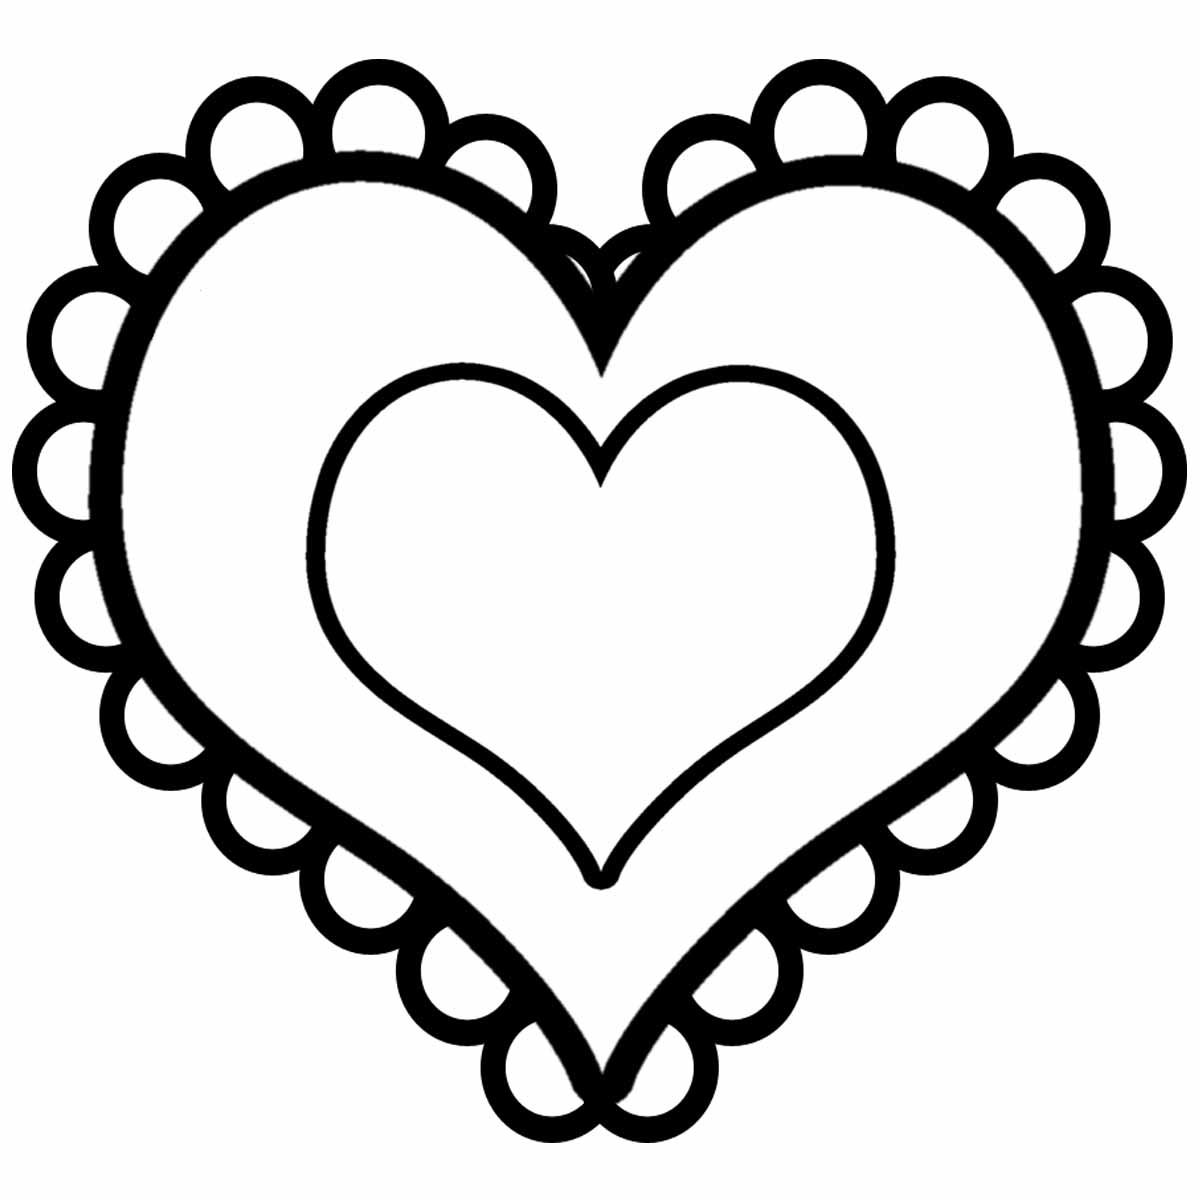 Valentine Heart Coloring Pages Best Coloring Pages For Kids Heart Coloring Pages Valentine Coloring Pages Shape Coloring Pages